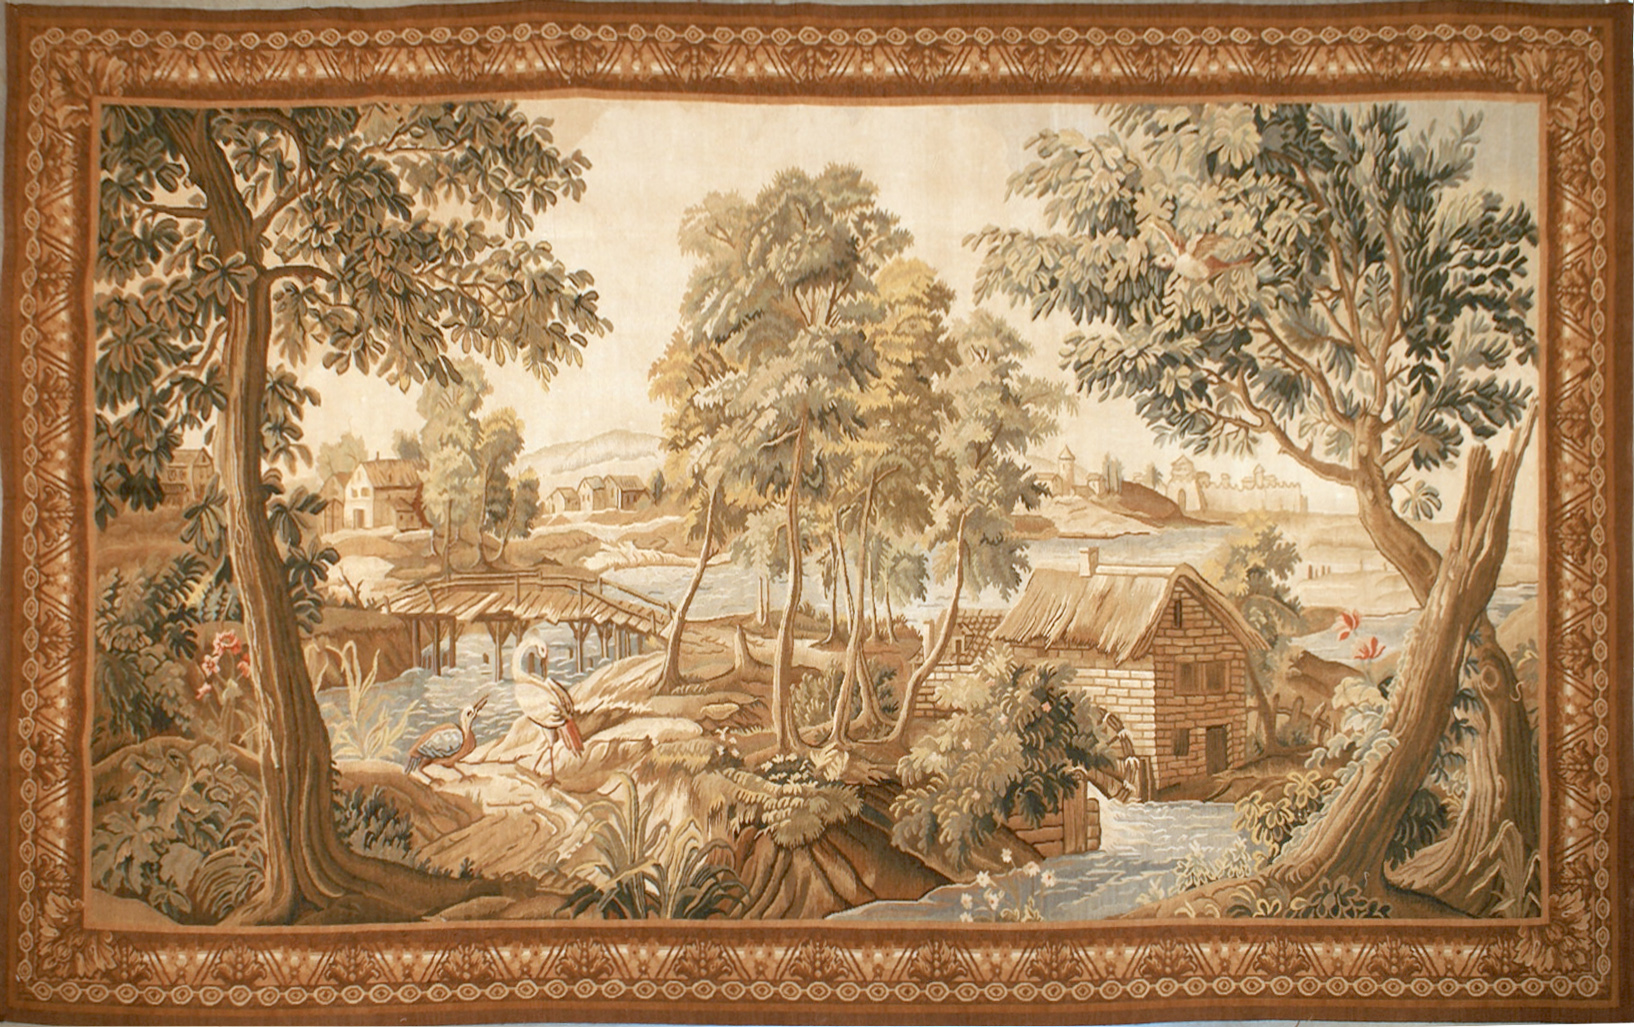 6′9″W x 4′3″H Hand-woven French Aubusson Tapestry Verdure Wall Hanging Rug 12981011